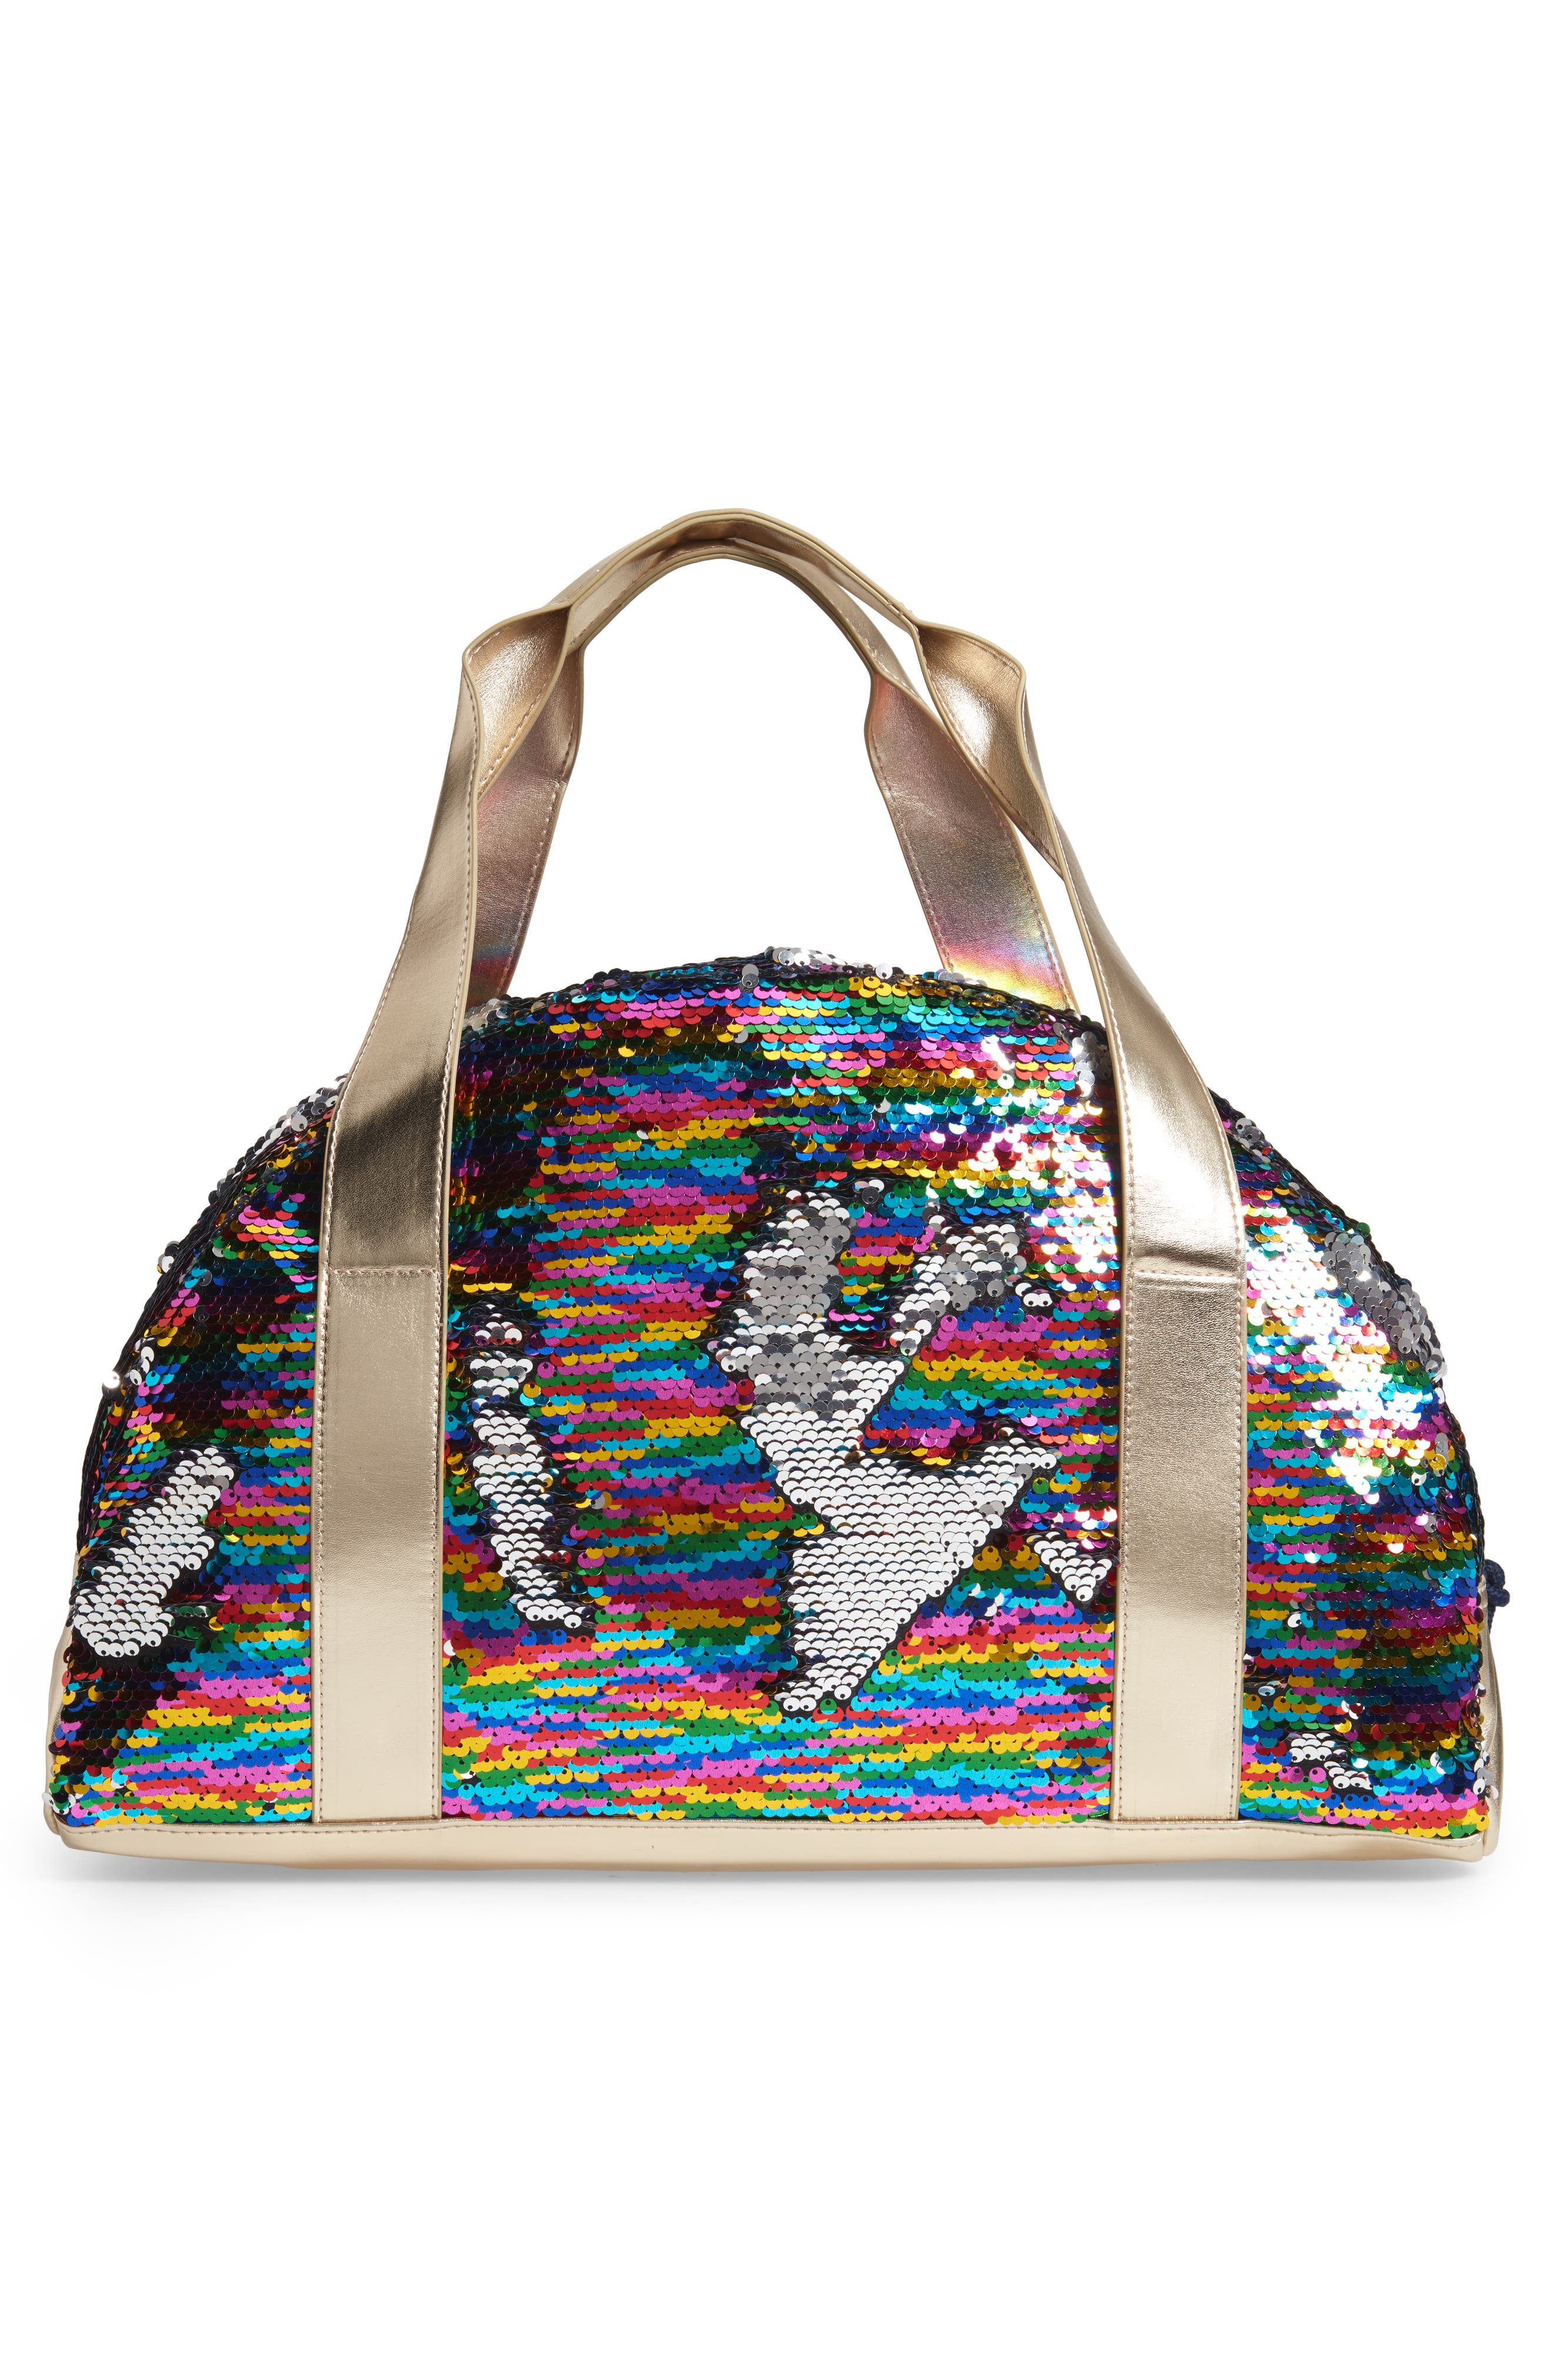 Overnight Bag with Reversible Sequins,                             Alternate thumbnail 2, color,                             964